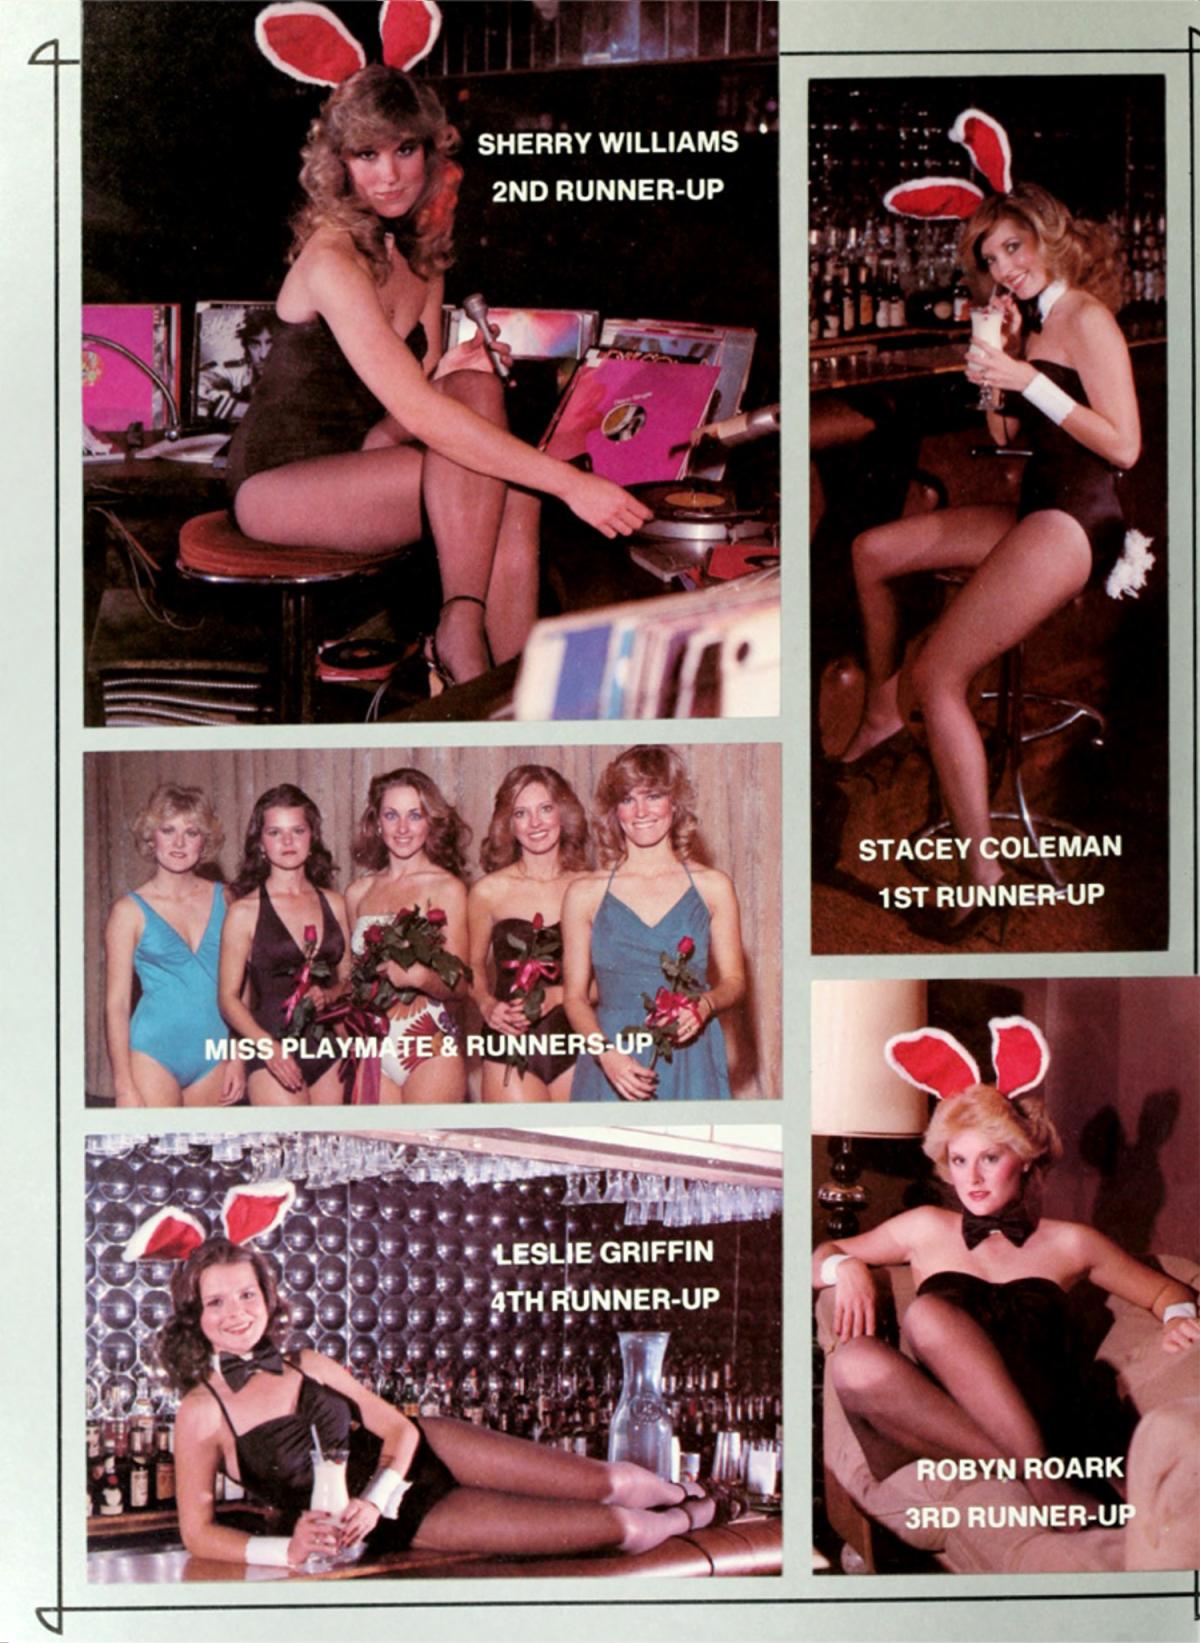 Texas Tech University yearbook, La Ventana Playboy